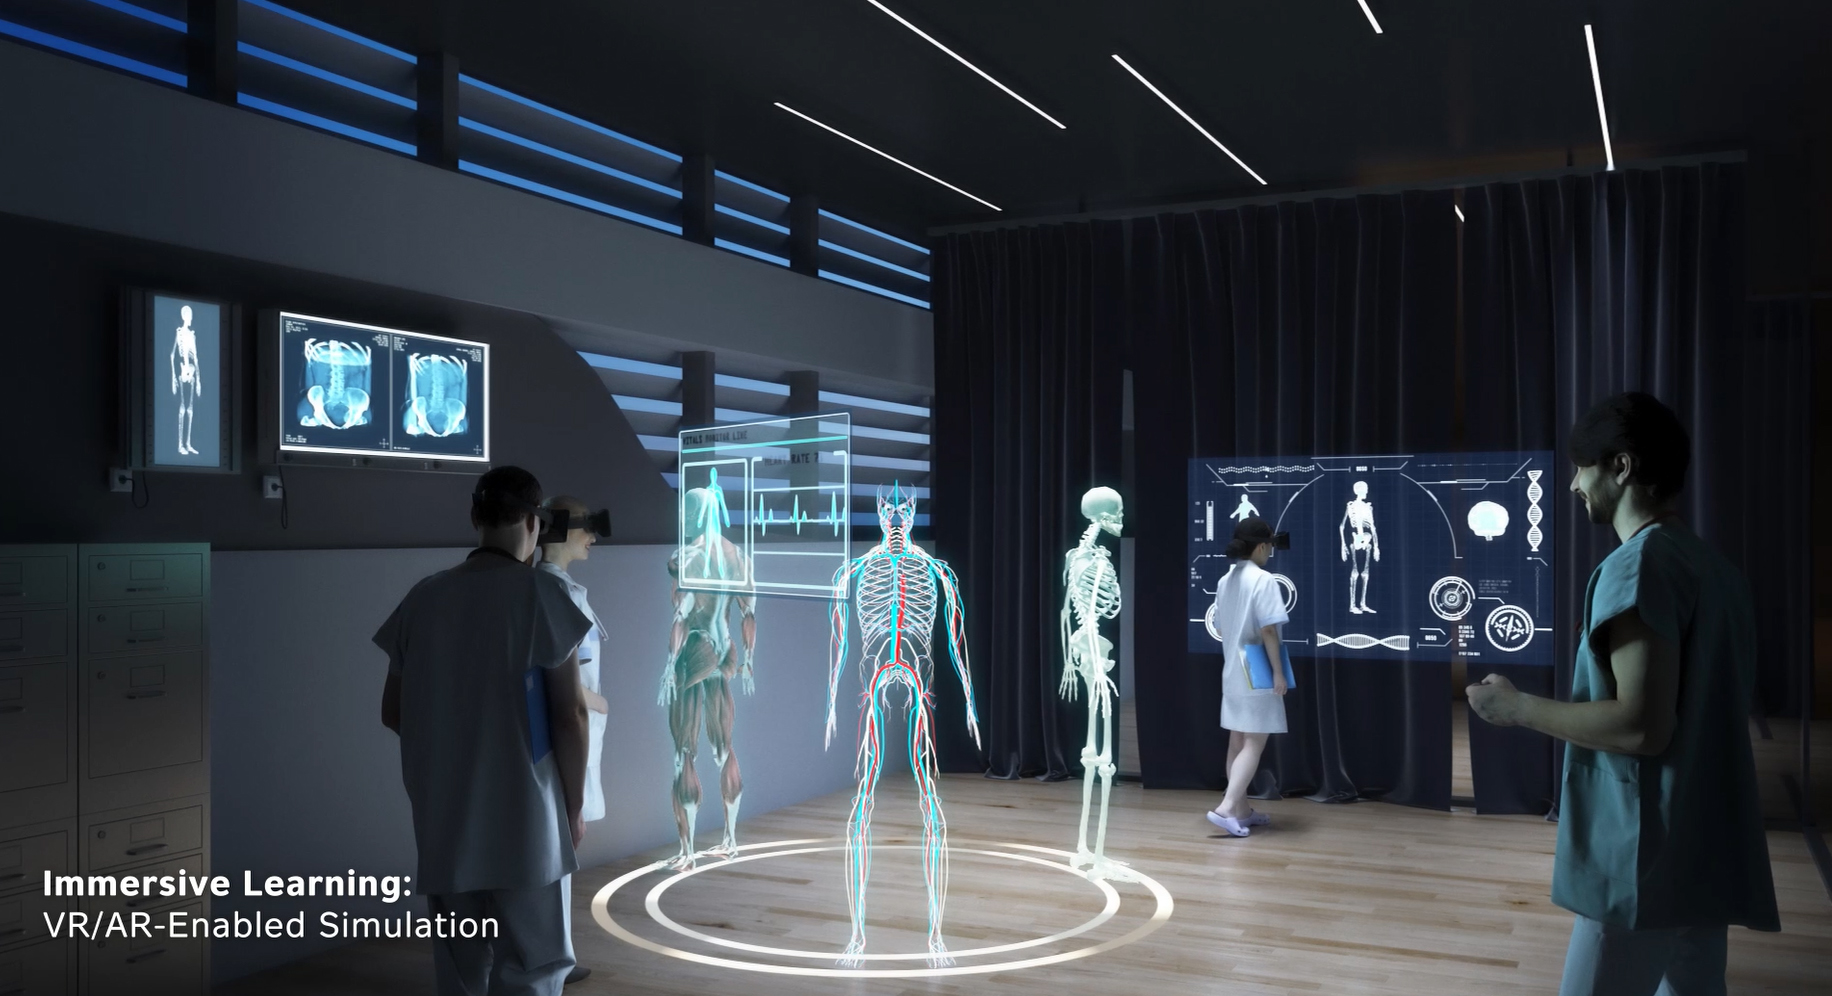 As part of a strategic combination between Atrium Health and Wake Forest Baptist Health, medical students in the future will learn in an advanced simulation center at the Wake Forest School of Medicine, employing the latest virtual reality and artificial intelligence technologies to advance medical science.